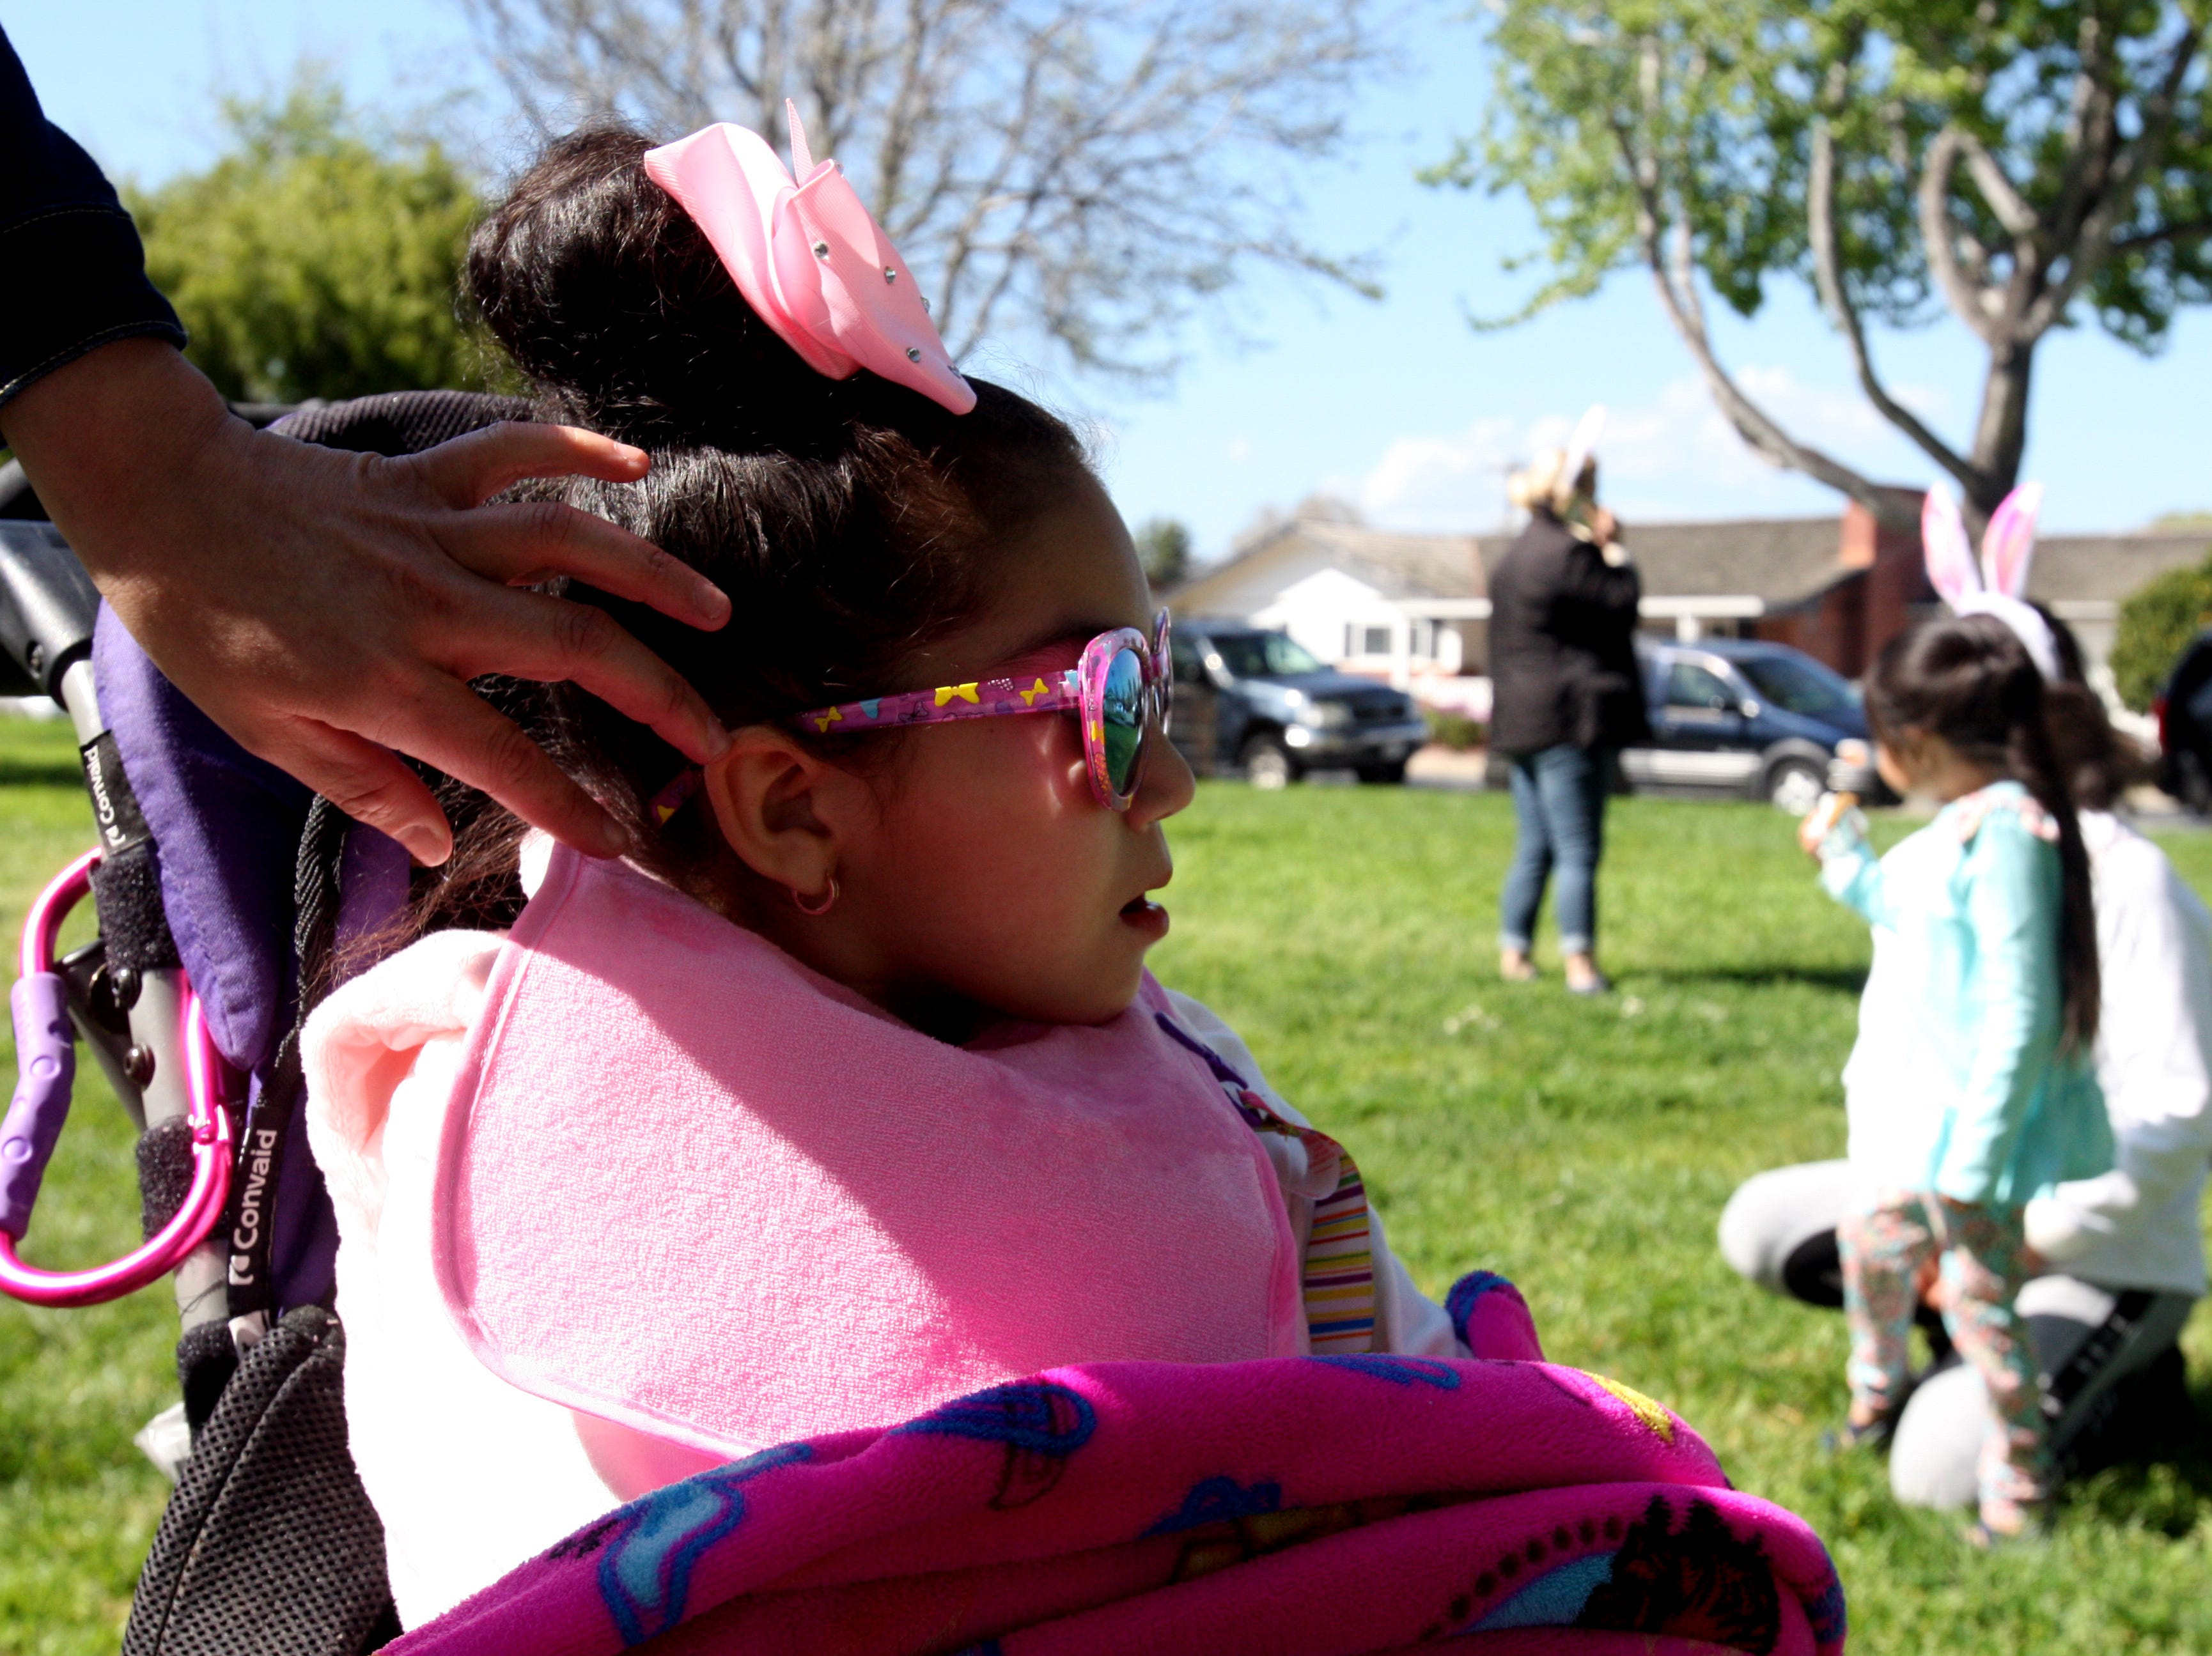 Vanessa Hernandez brushes her daughter's hair out of her face at the Easter Bunny Surprise Party for Salinas kids with life-threatening illnesses put on by Partnership for Children. Aaliyah Hernandez has Rhett syndrome, and Hernandez said events like this give her daughter and herself the opportunity to spend time with other special-needs moms and kids.